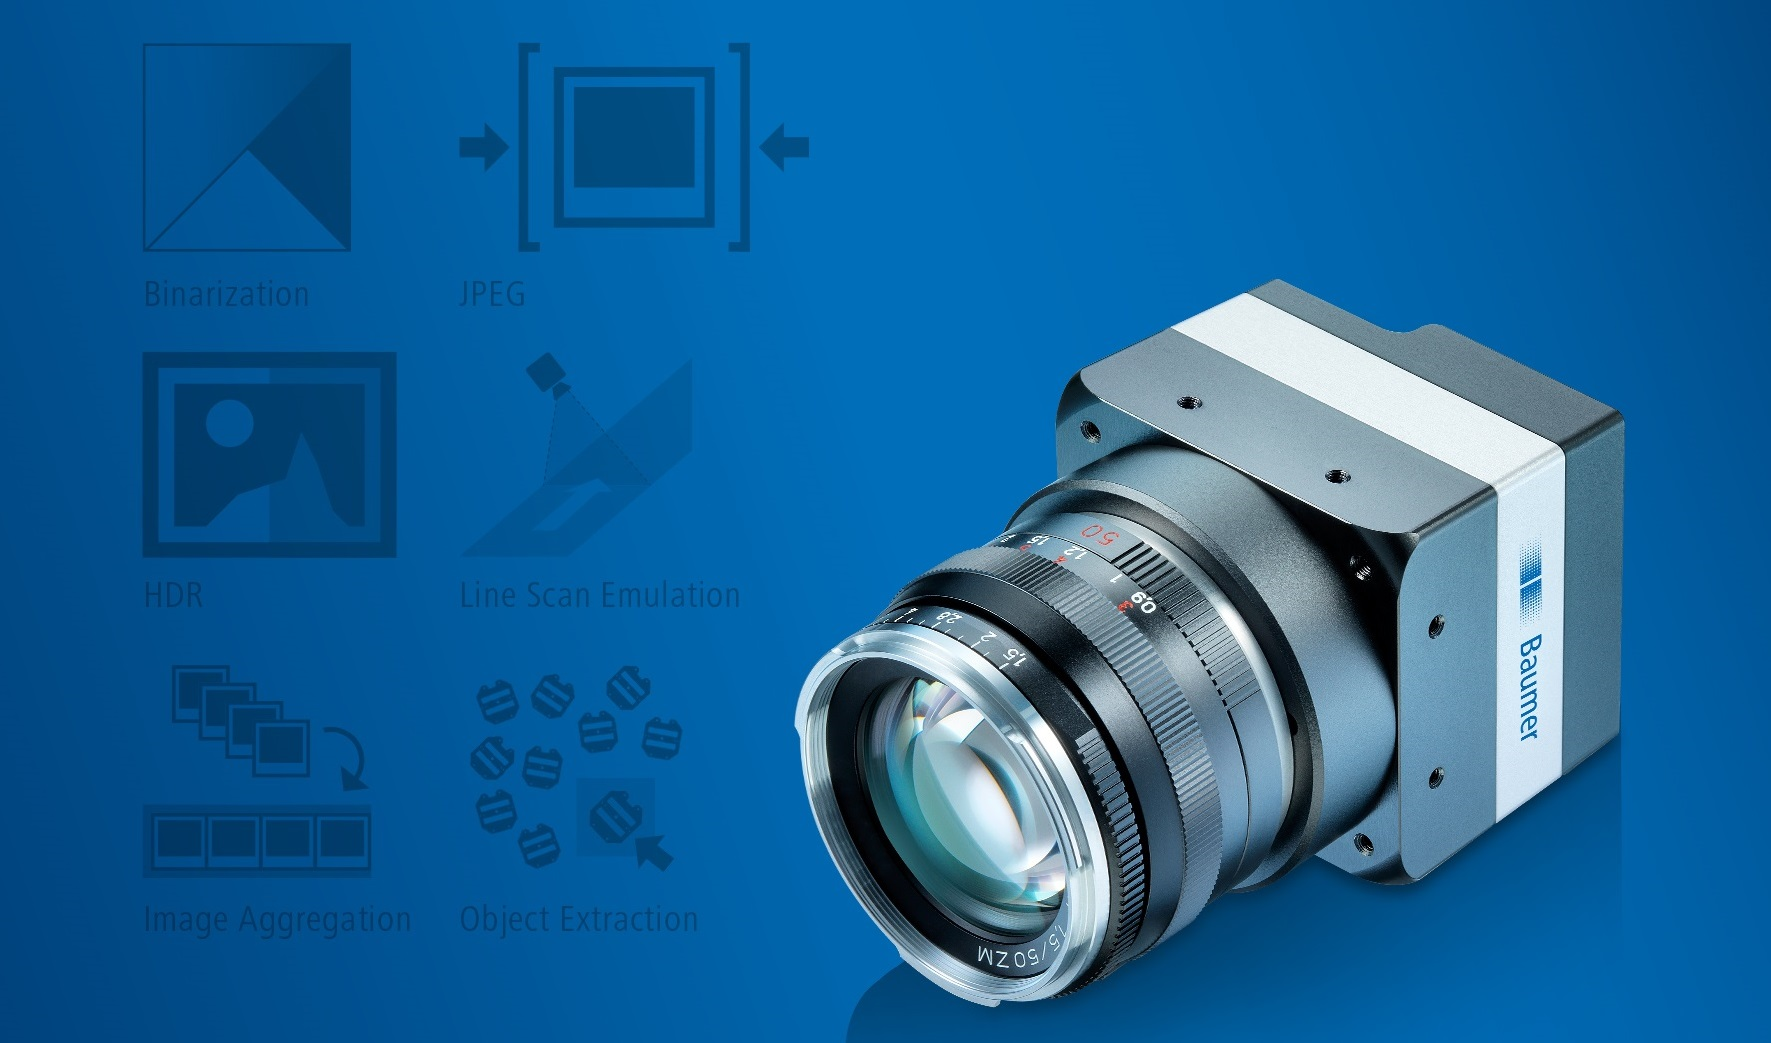 Baumer ready-to-use SmartApplets eliminate the need for defining image processing algorithms in complex applications.